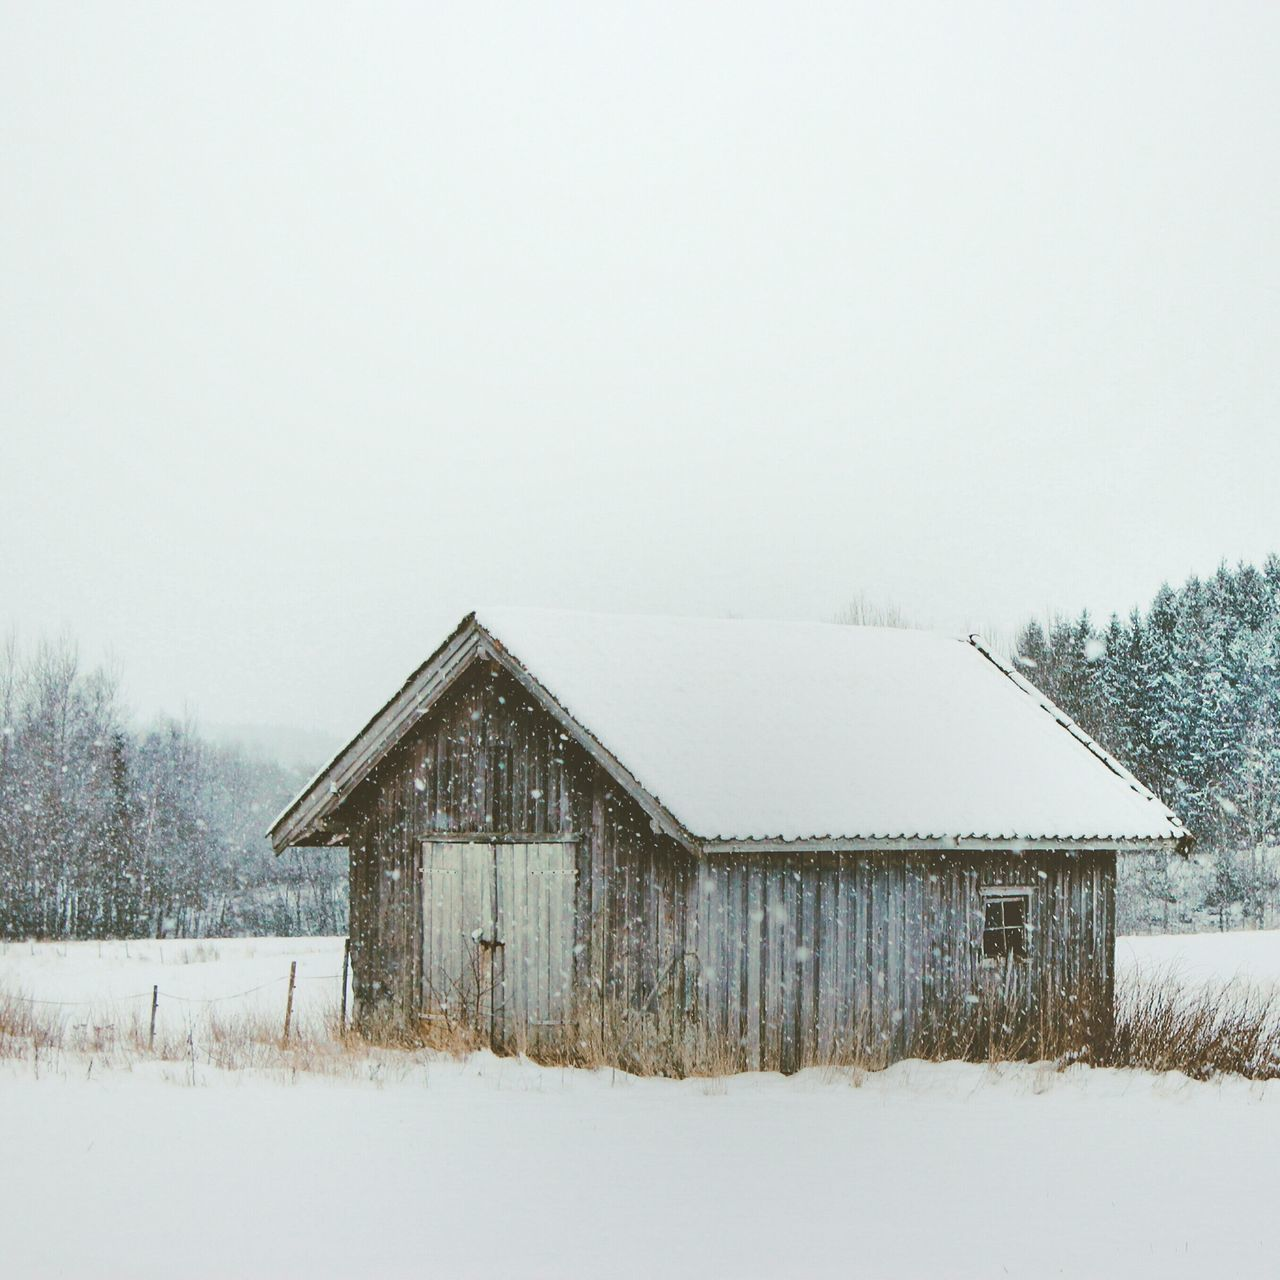 A snowy shelter Winter Wonderland EyeEm Nature Lover Landscape_photography Winter